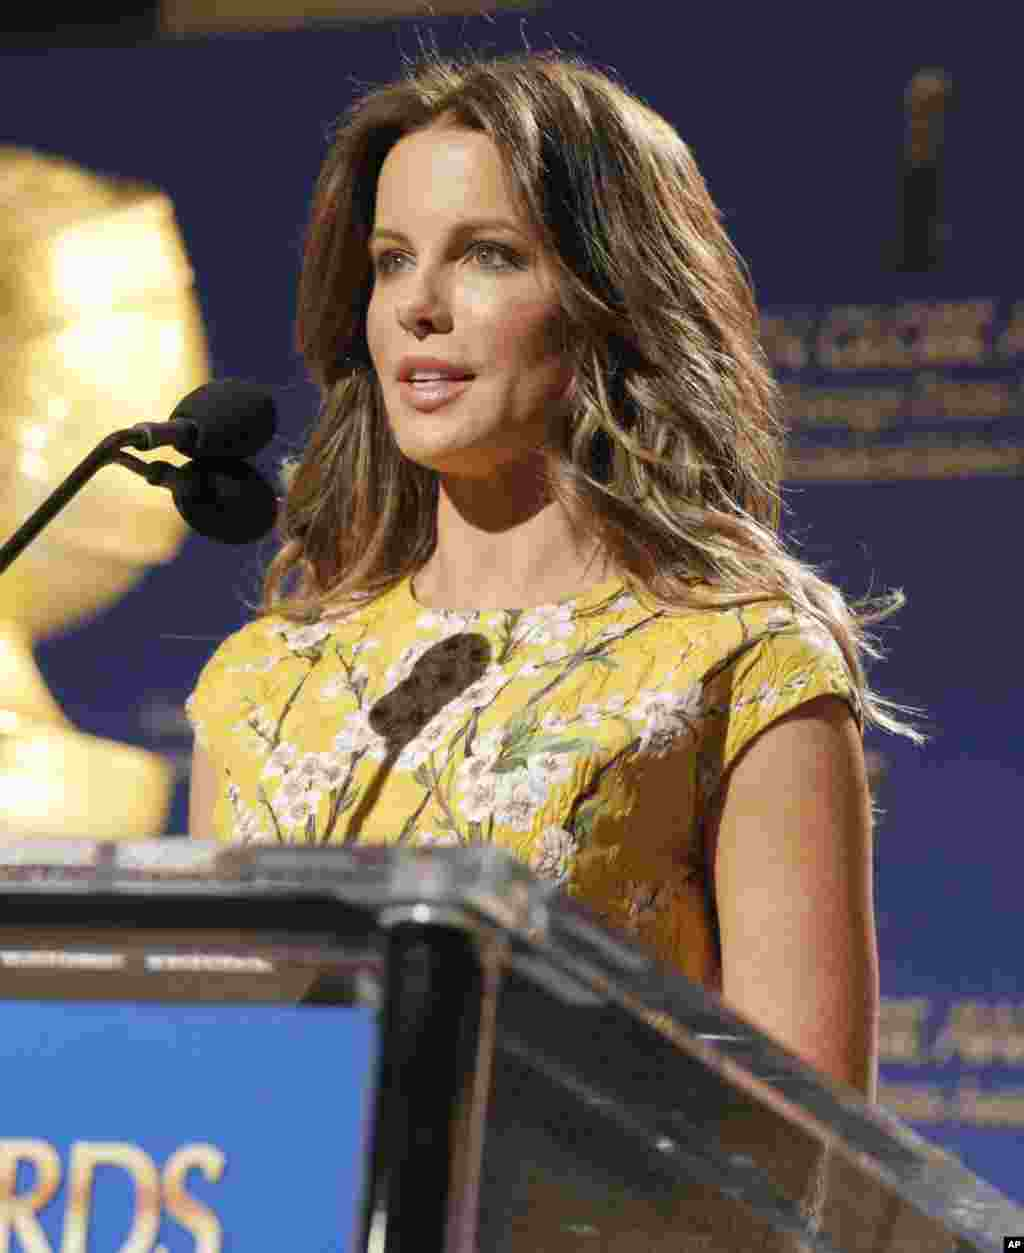 72nd Annual Golden Globe Awards Nominations Announcement